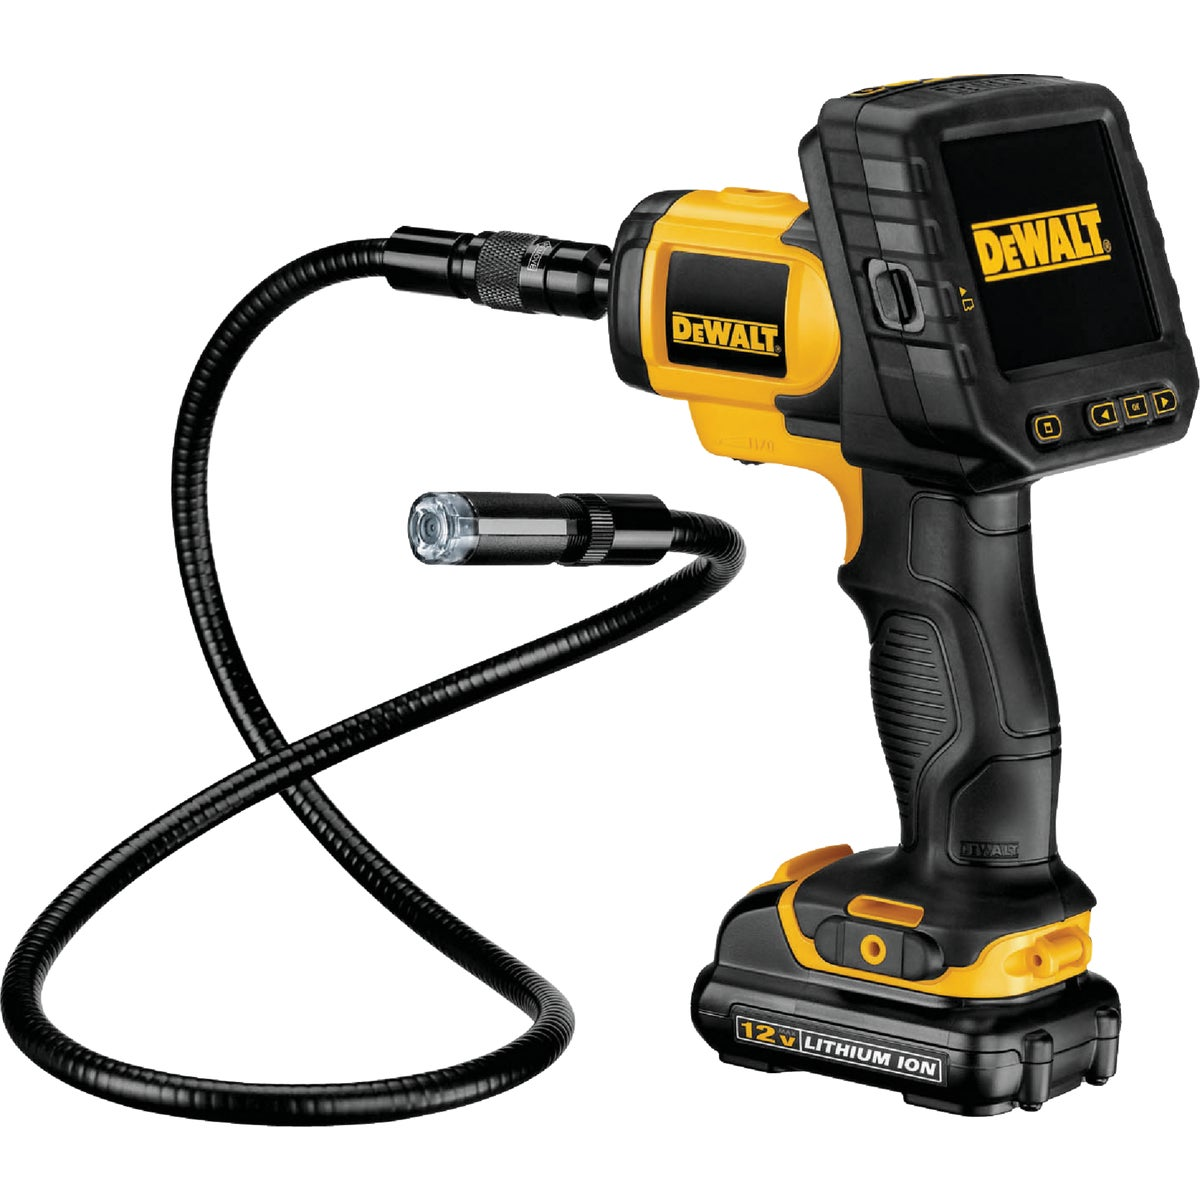 12V INSPECTION CAMERA - DCT410S1 by DeWalt